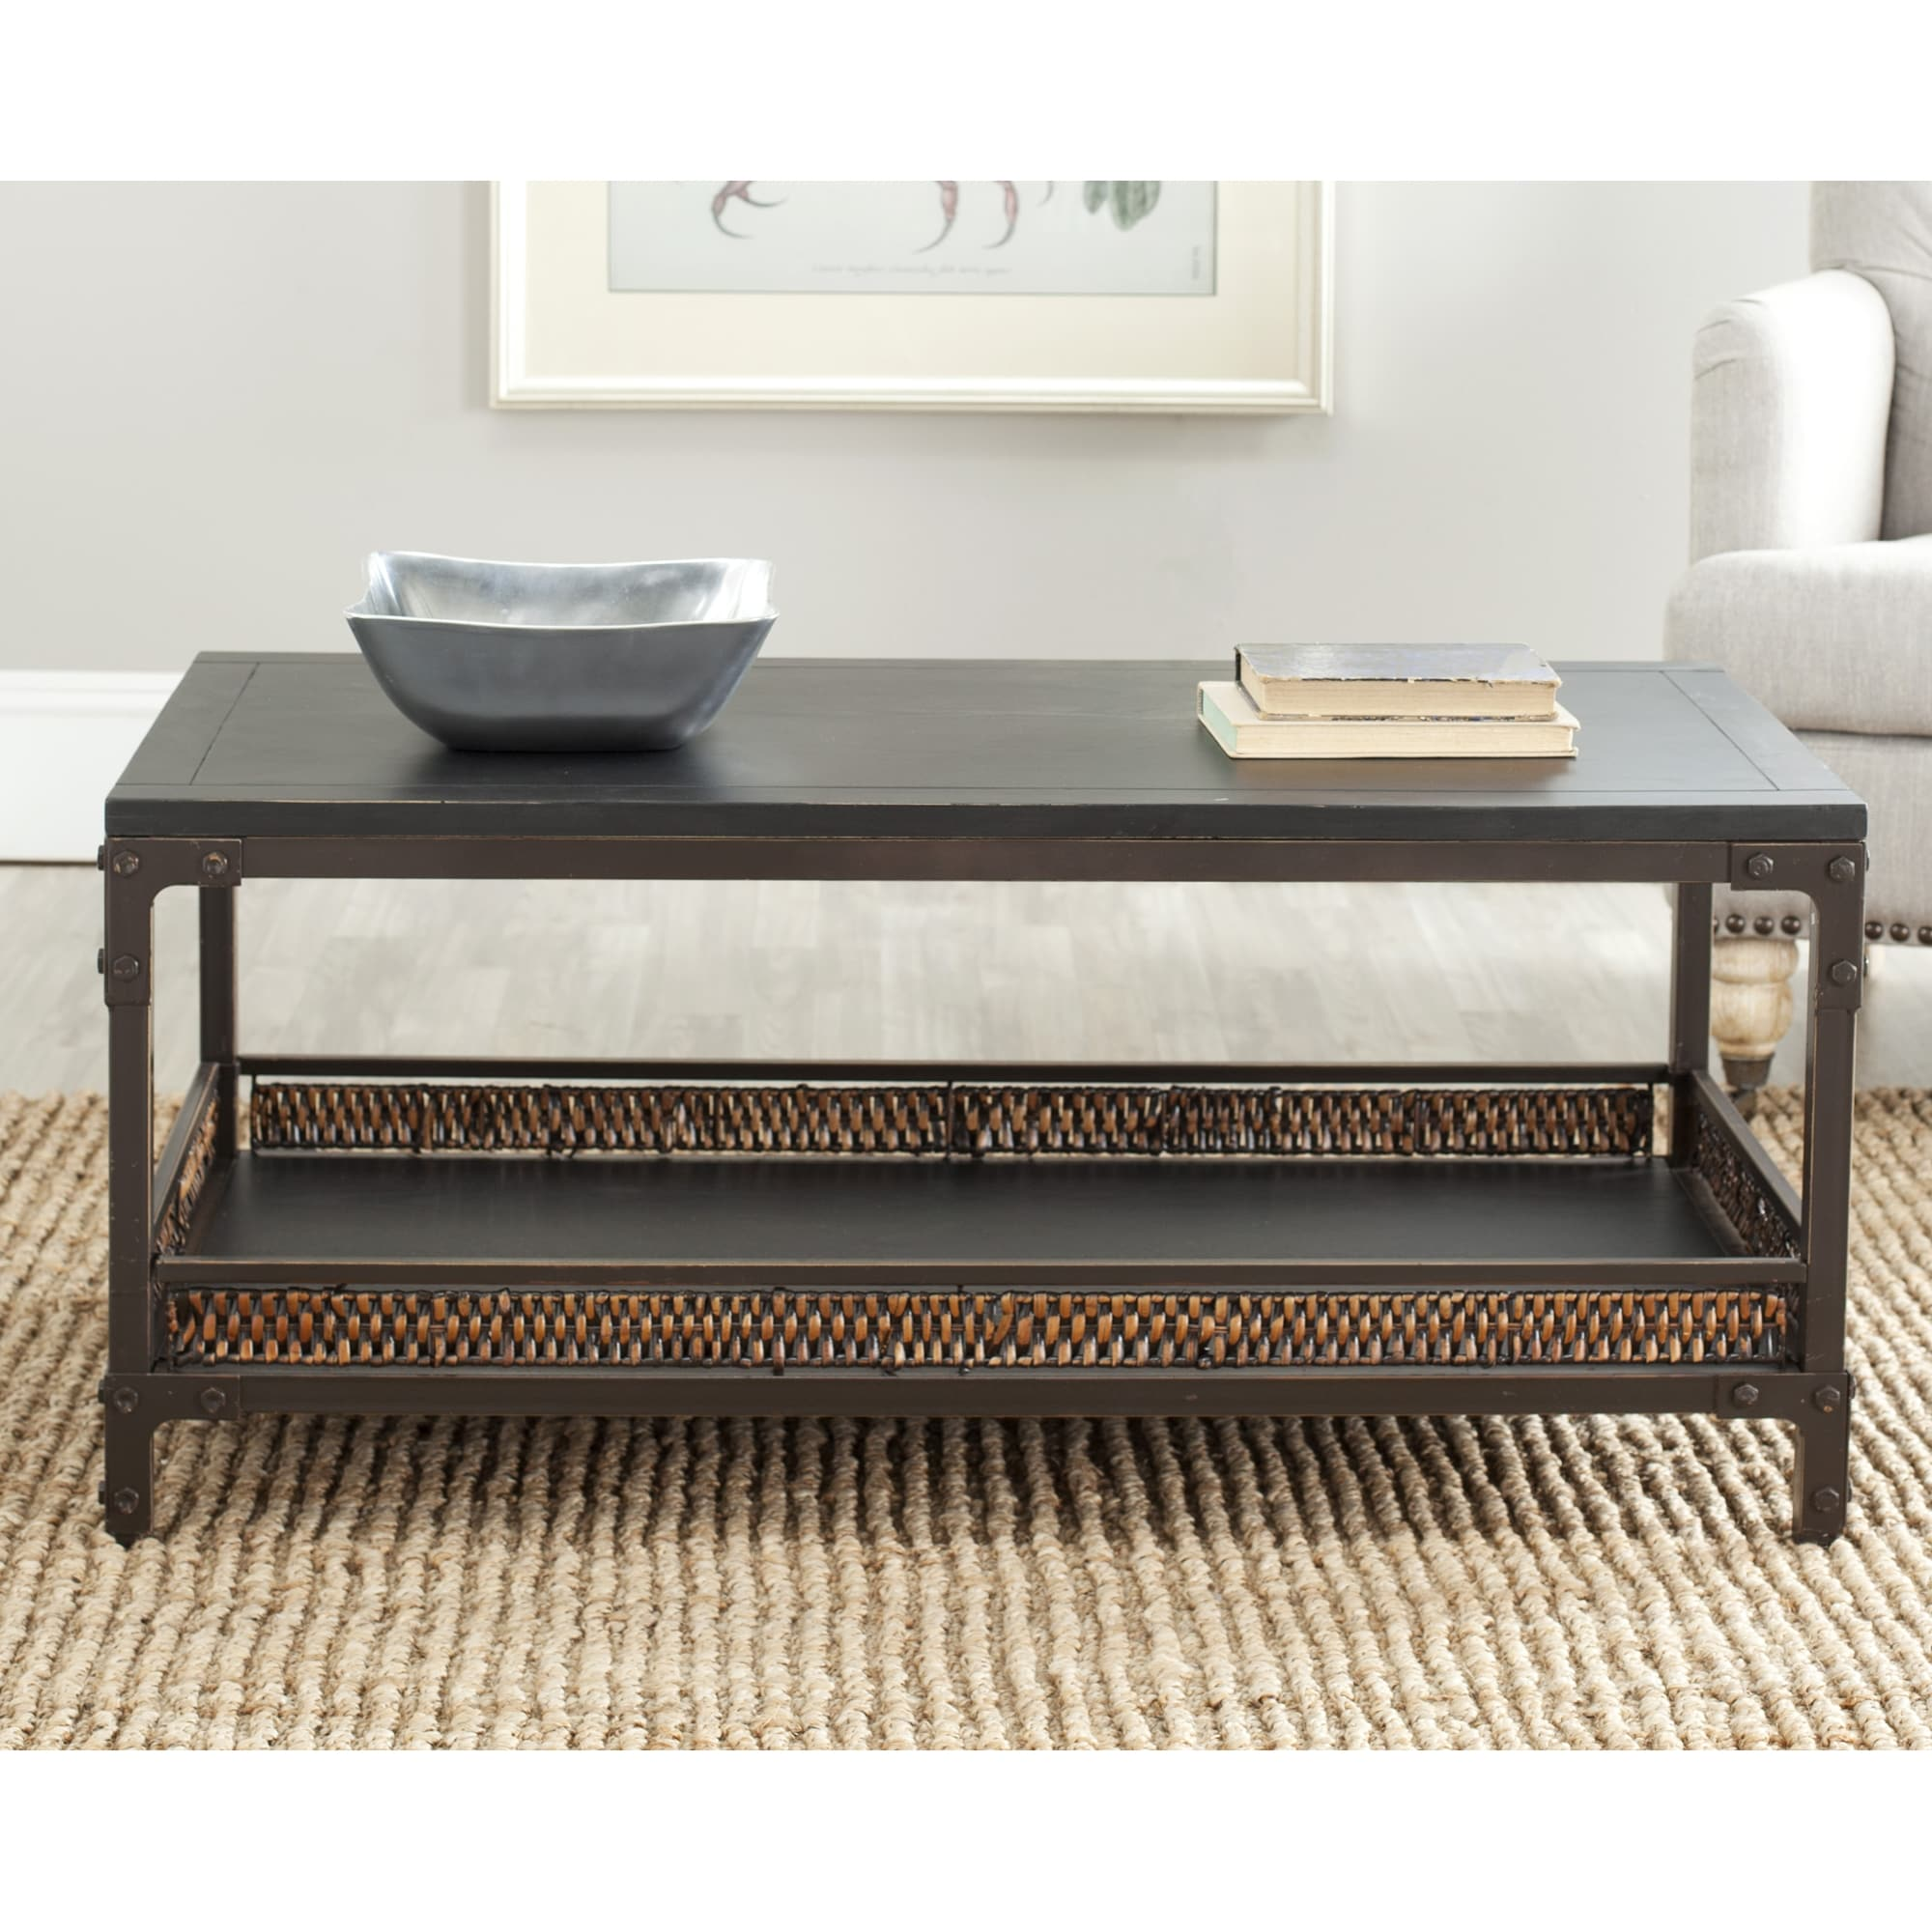 Safavieh Bedford Wicker Accent Wood Top Coffee Table at Sears.com